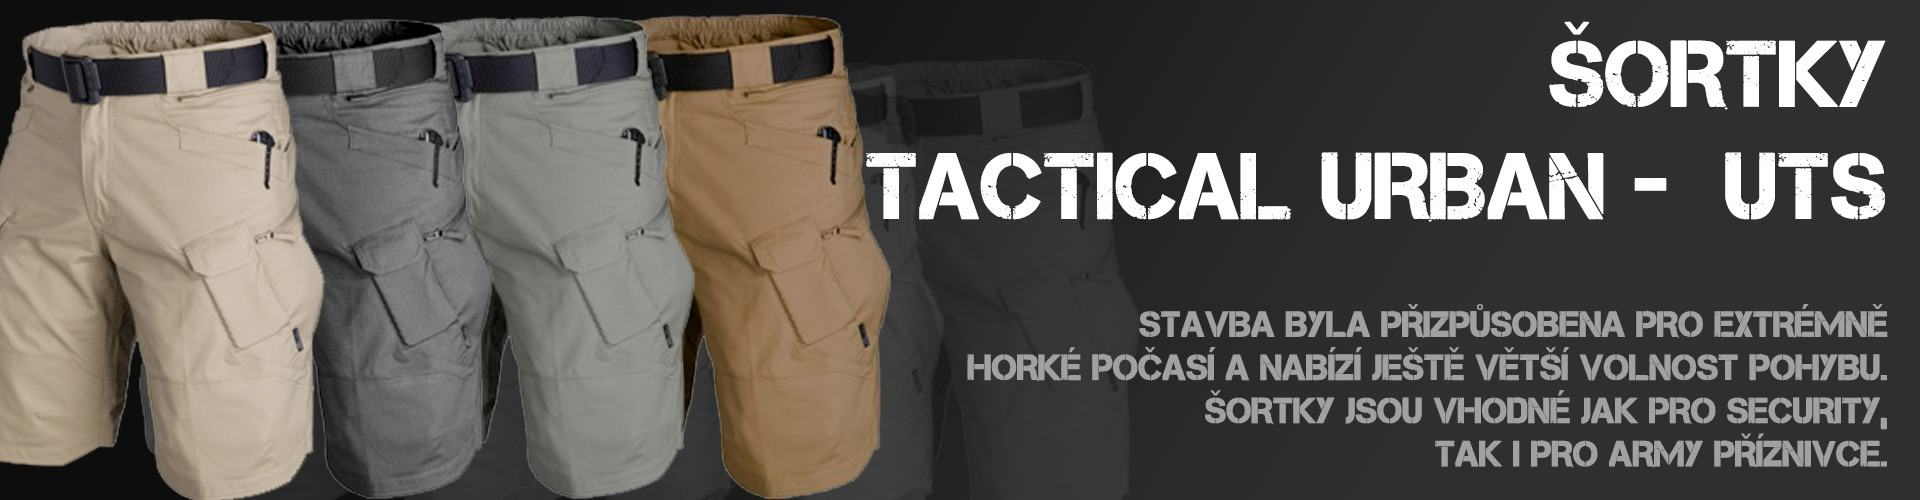 Šortky tactical urban - UTS